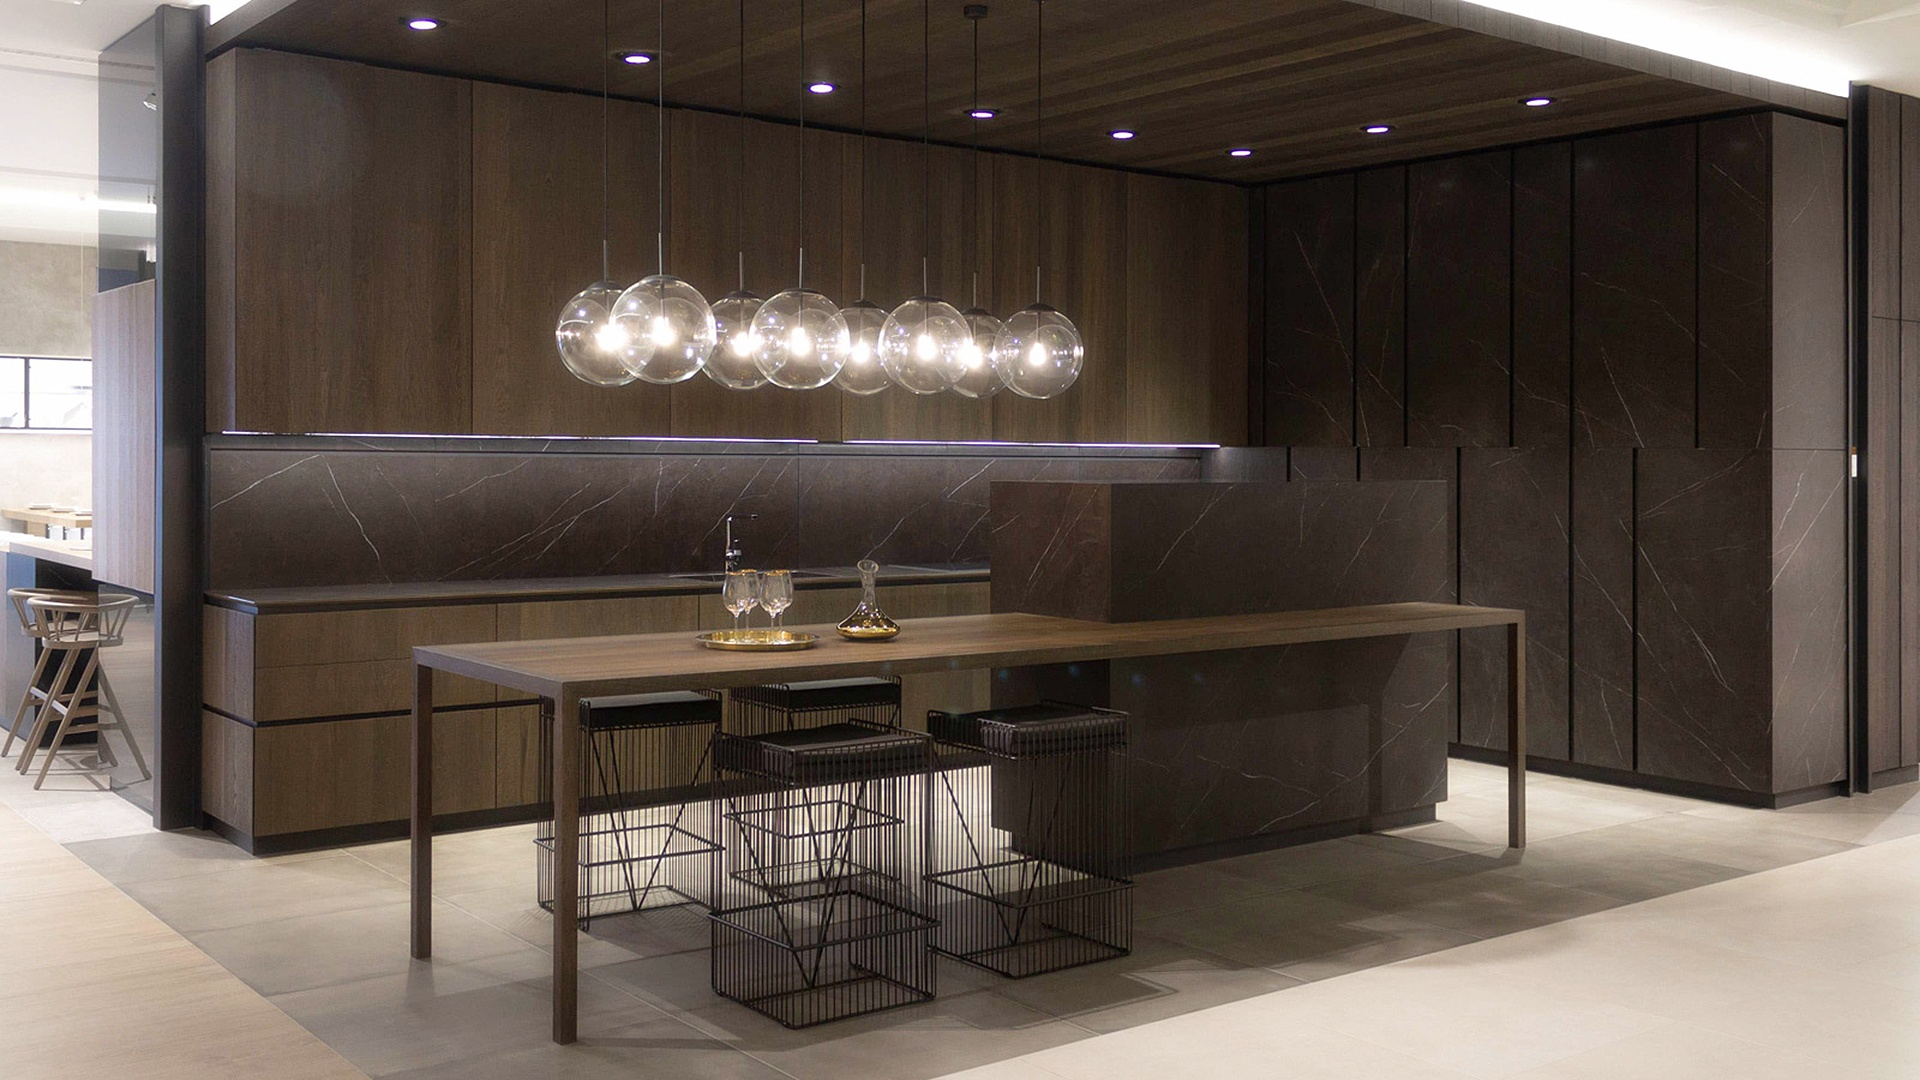 cocinas-modernas-diseno-ideas-cocina-isla-modern-kitchen-design-madrid-05